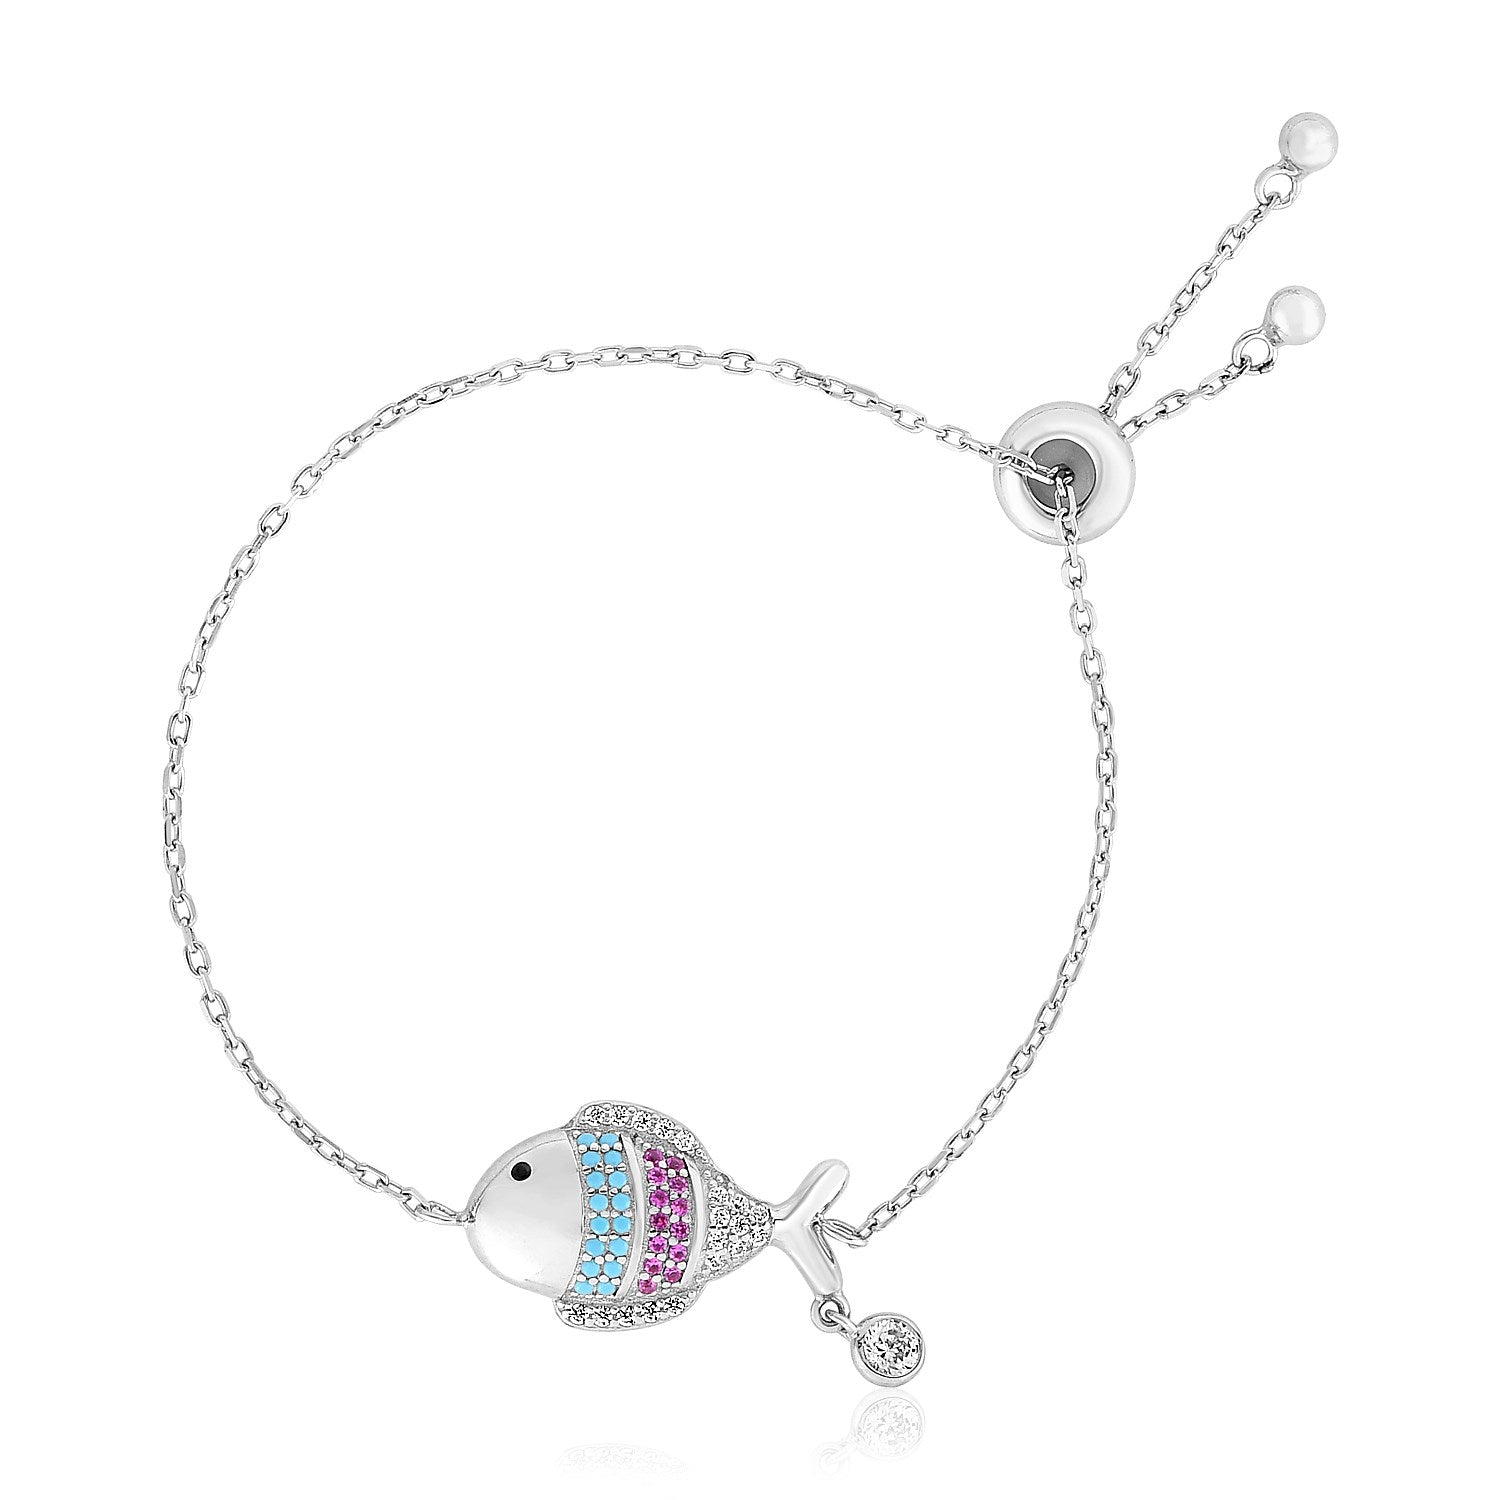 Sterling Silver 9 1/4 inch Adjustable Bracelet with Fish with Cubic Zirconias